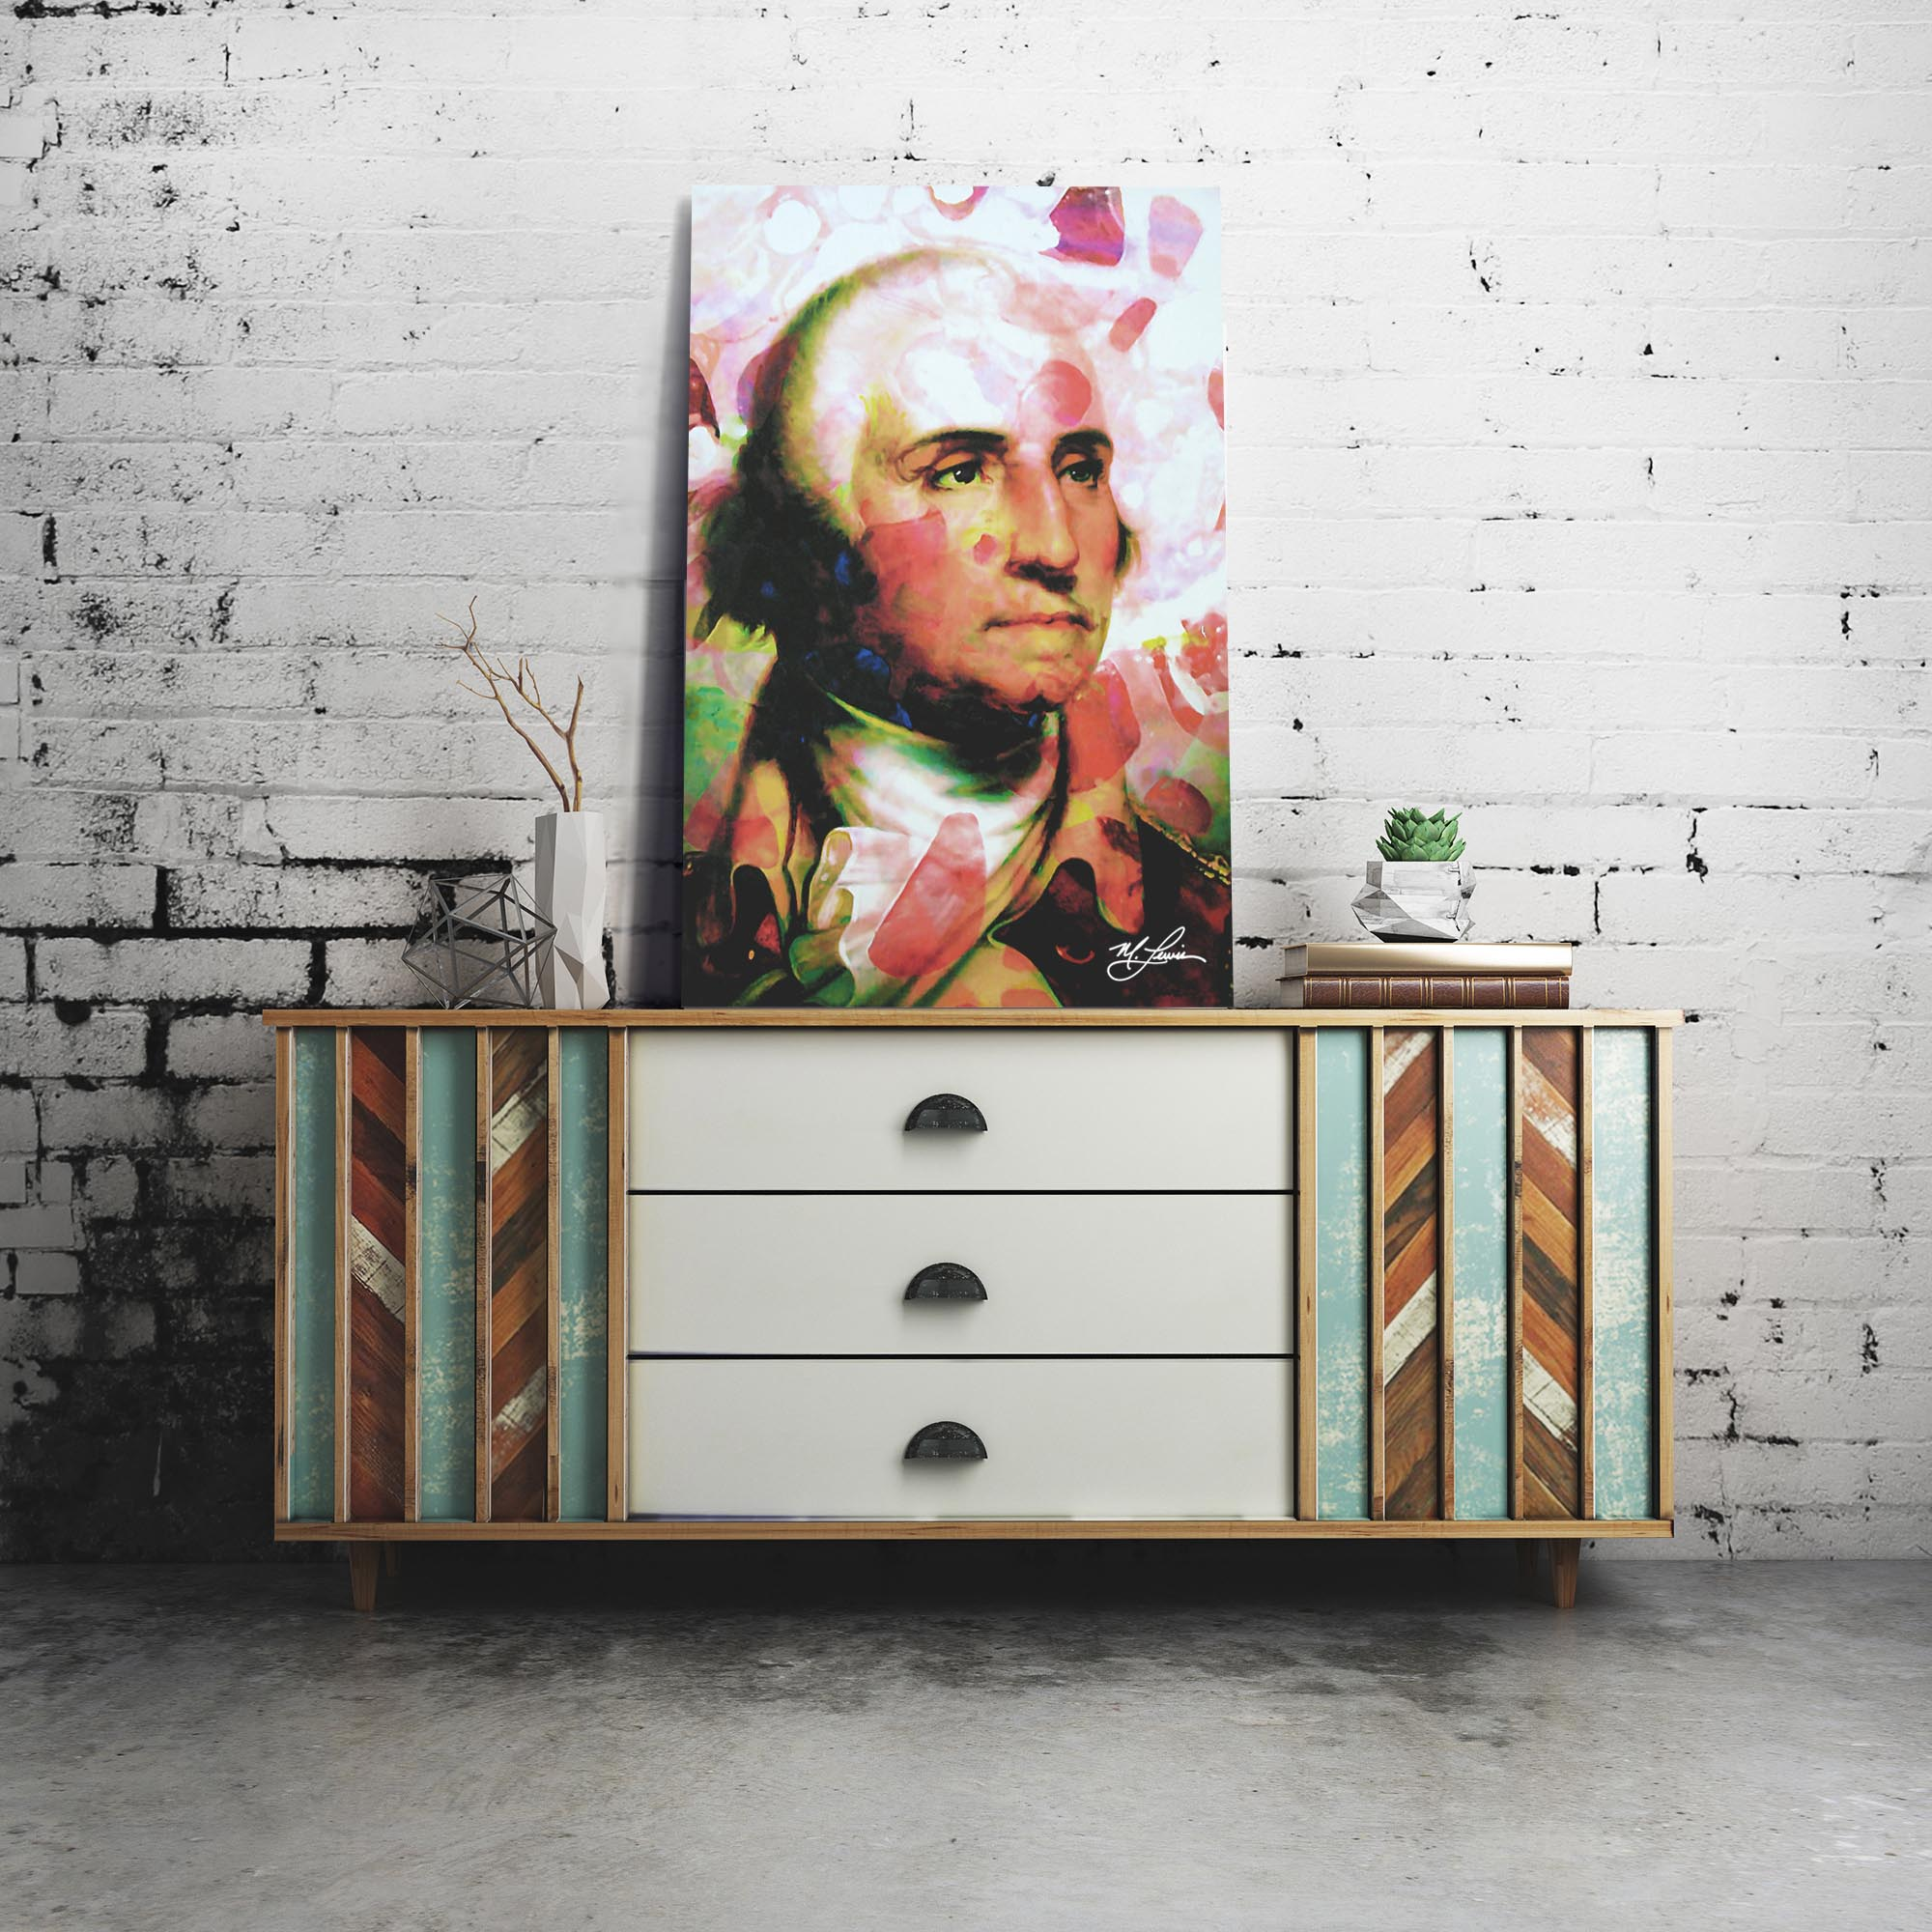 George Washington Disciplined Soul by Mark Lewis - Celebrity Pop Art on Metal or Plexiglass - ML0040